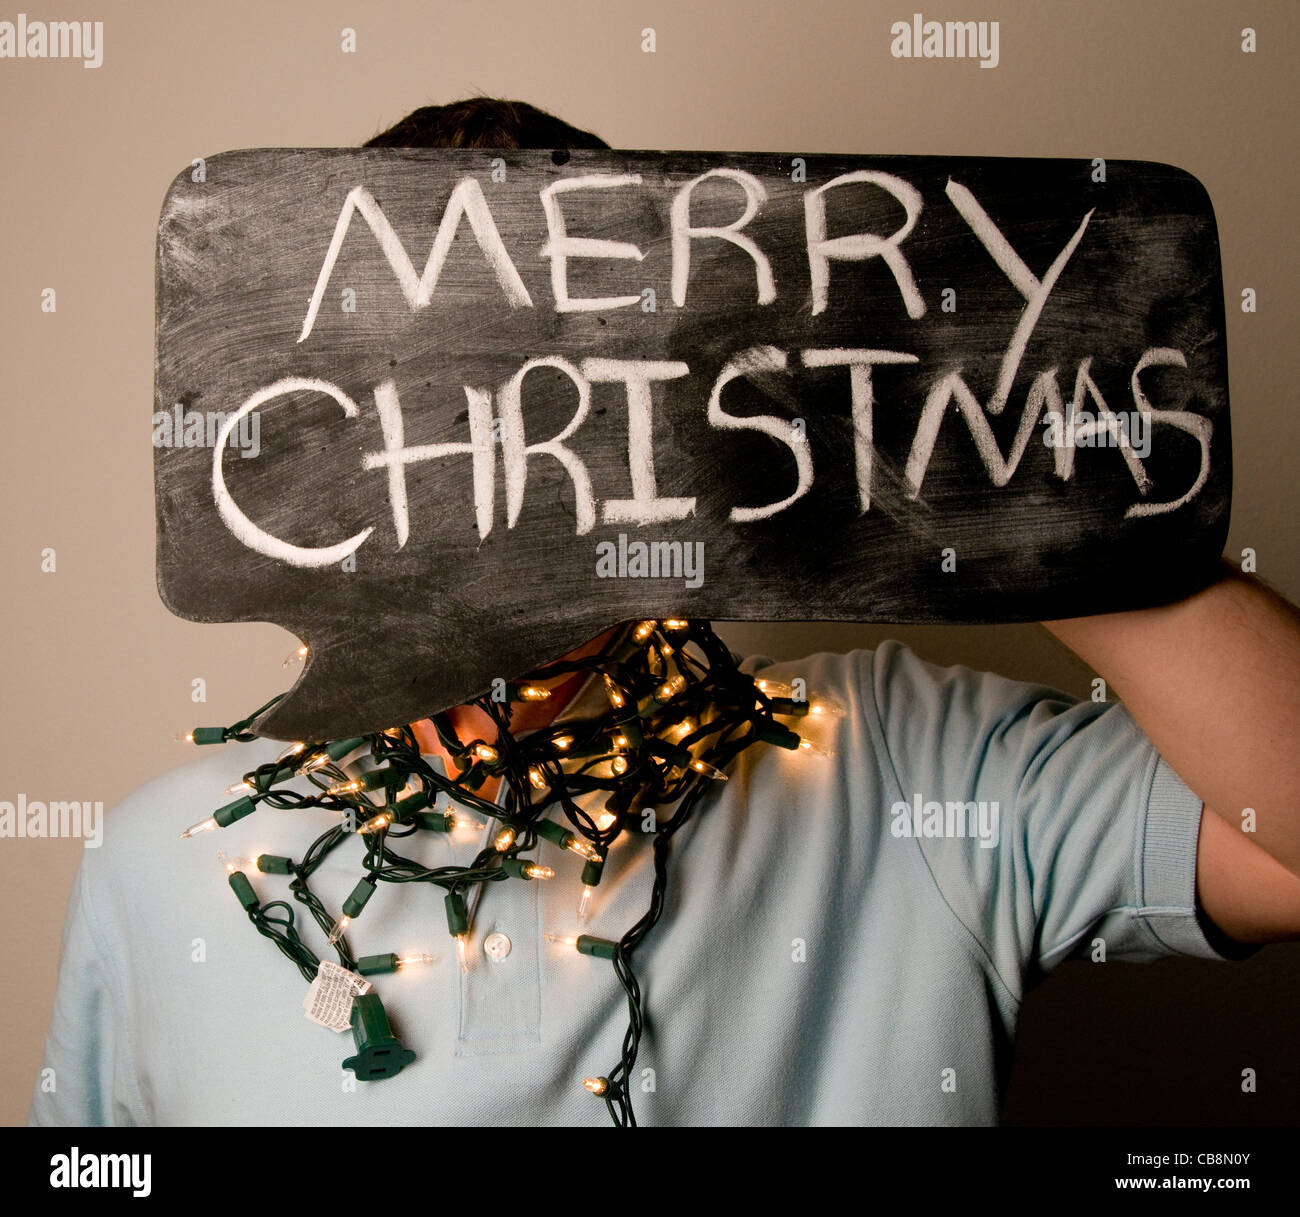 man holding merry christmas sign on chalkboard bubble stock image